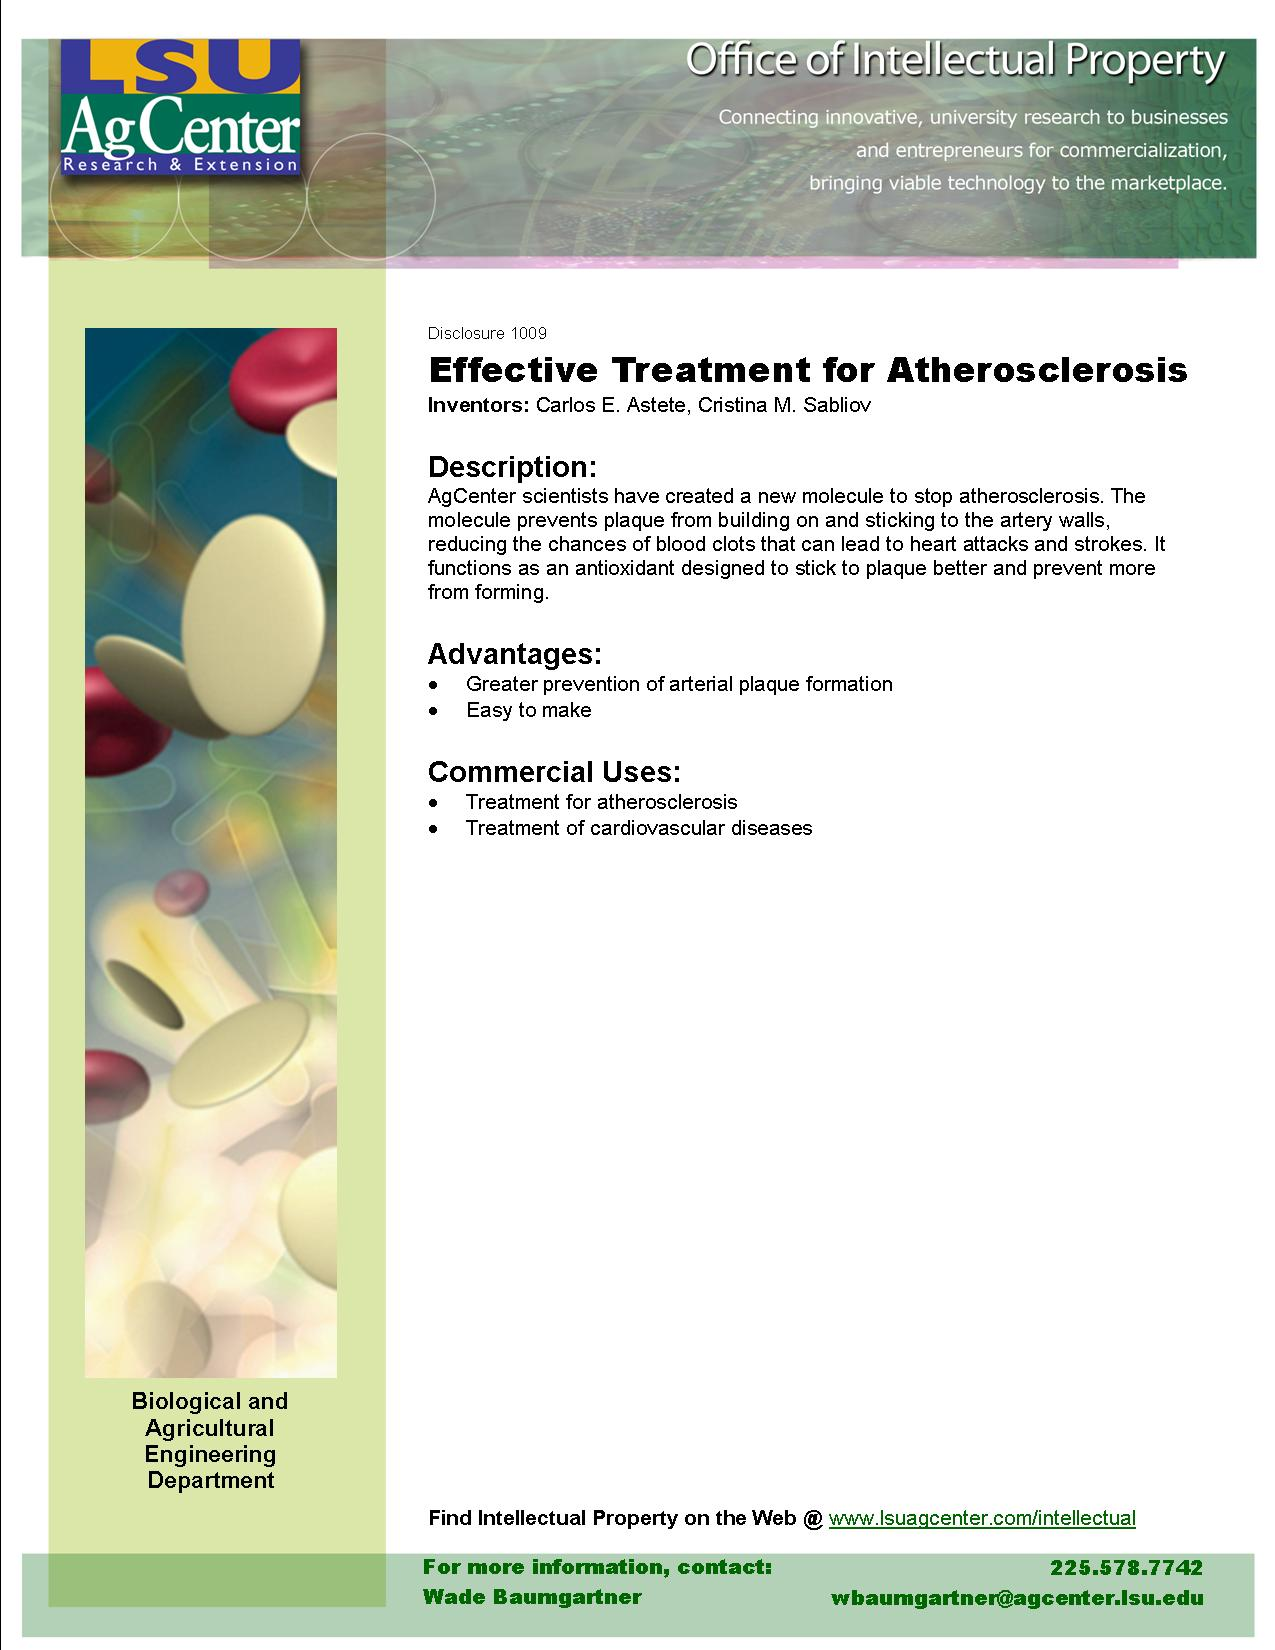 Effective Treatment for Atherosclerosis